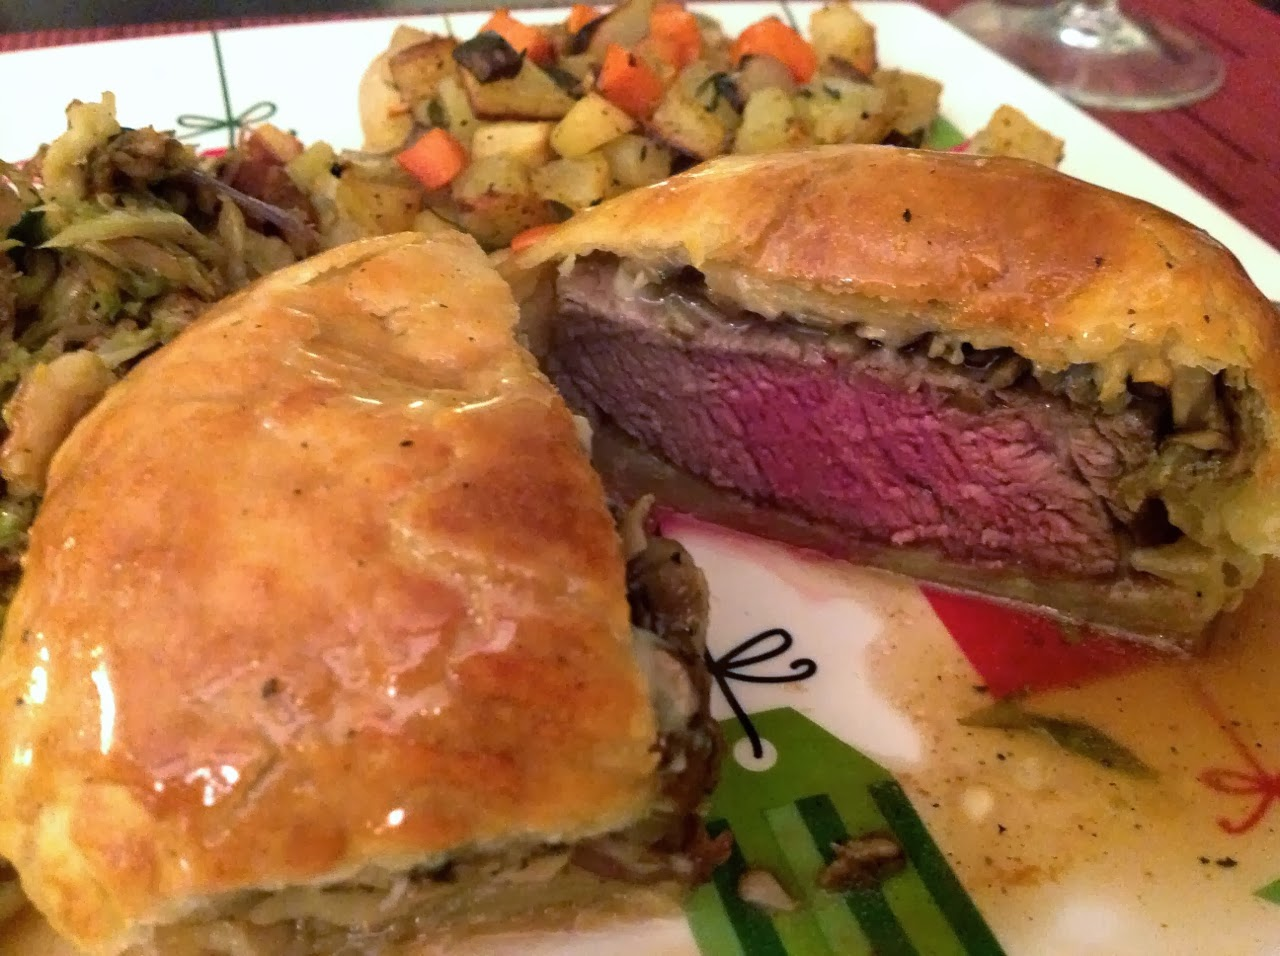 Beef wellington with gorgonzola cheese